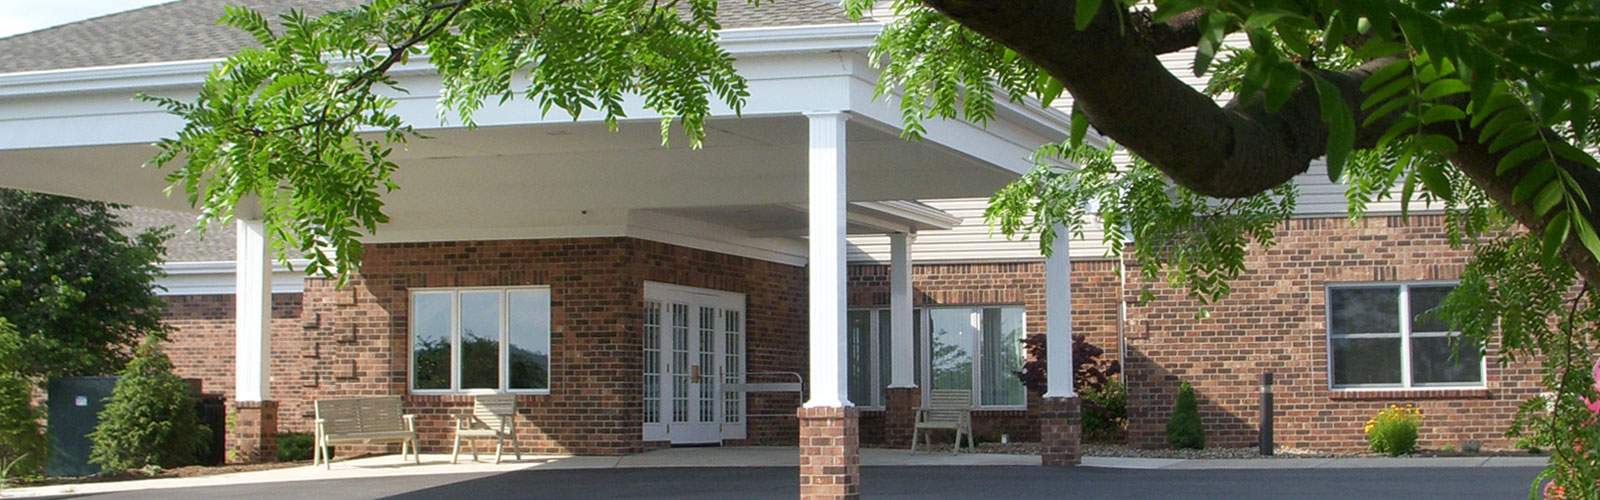 Exterior of retirement community at Laurel View Village